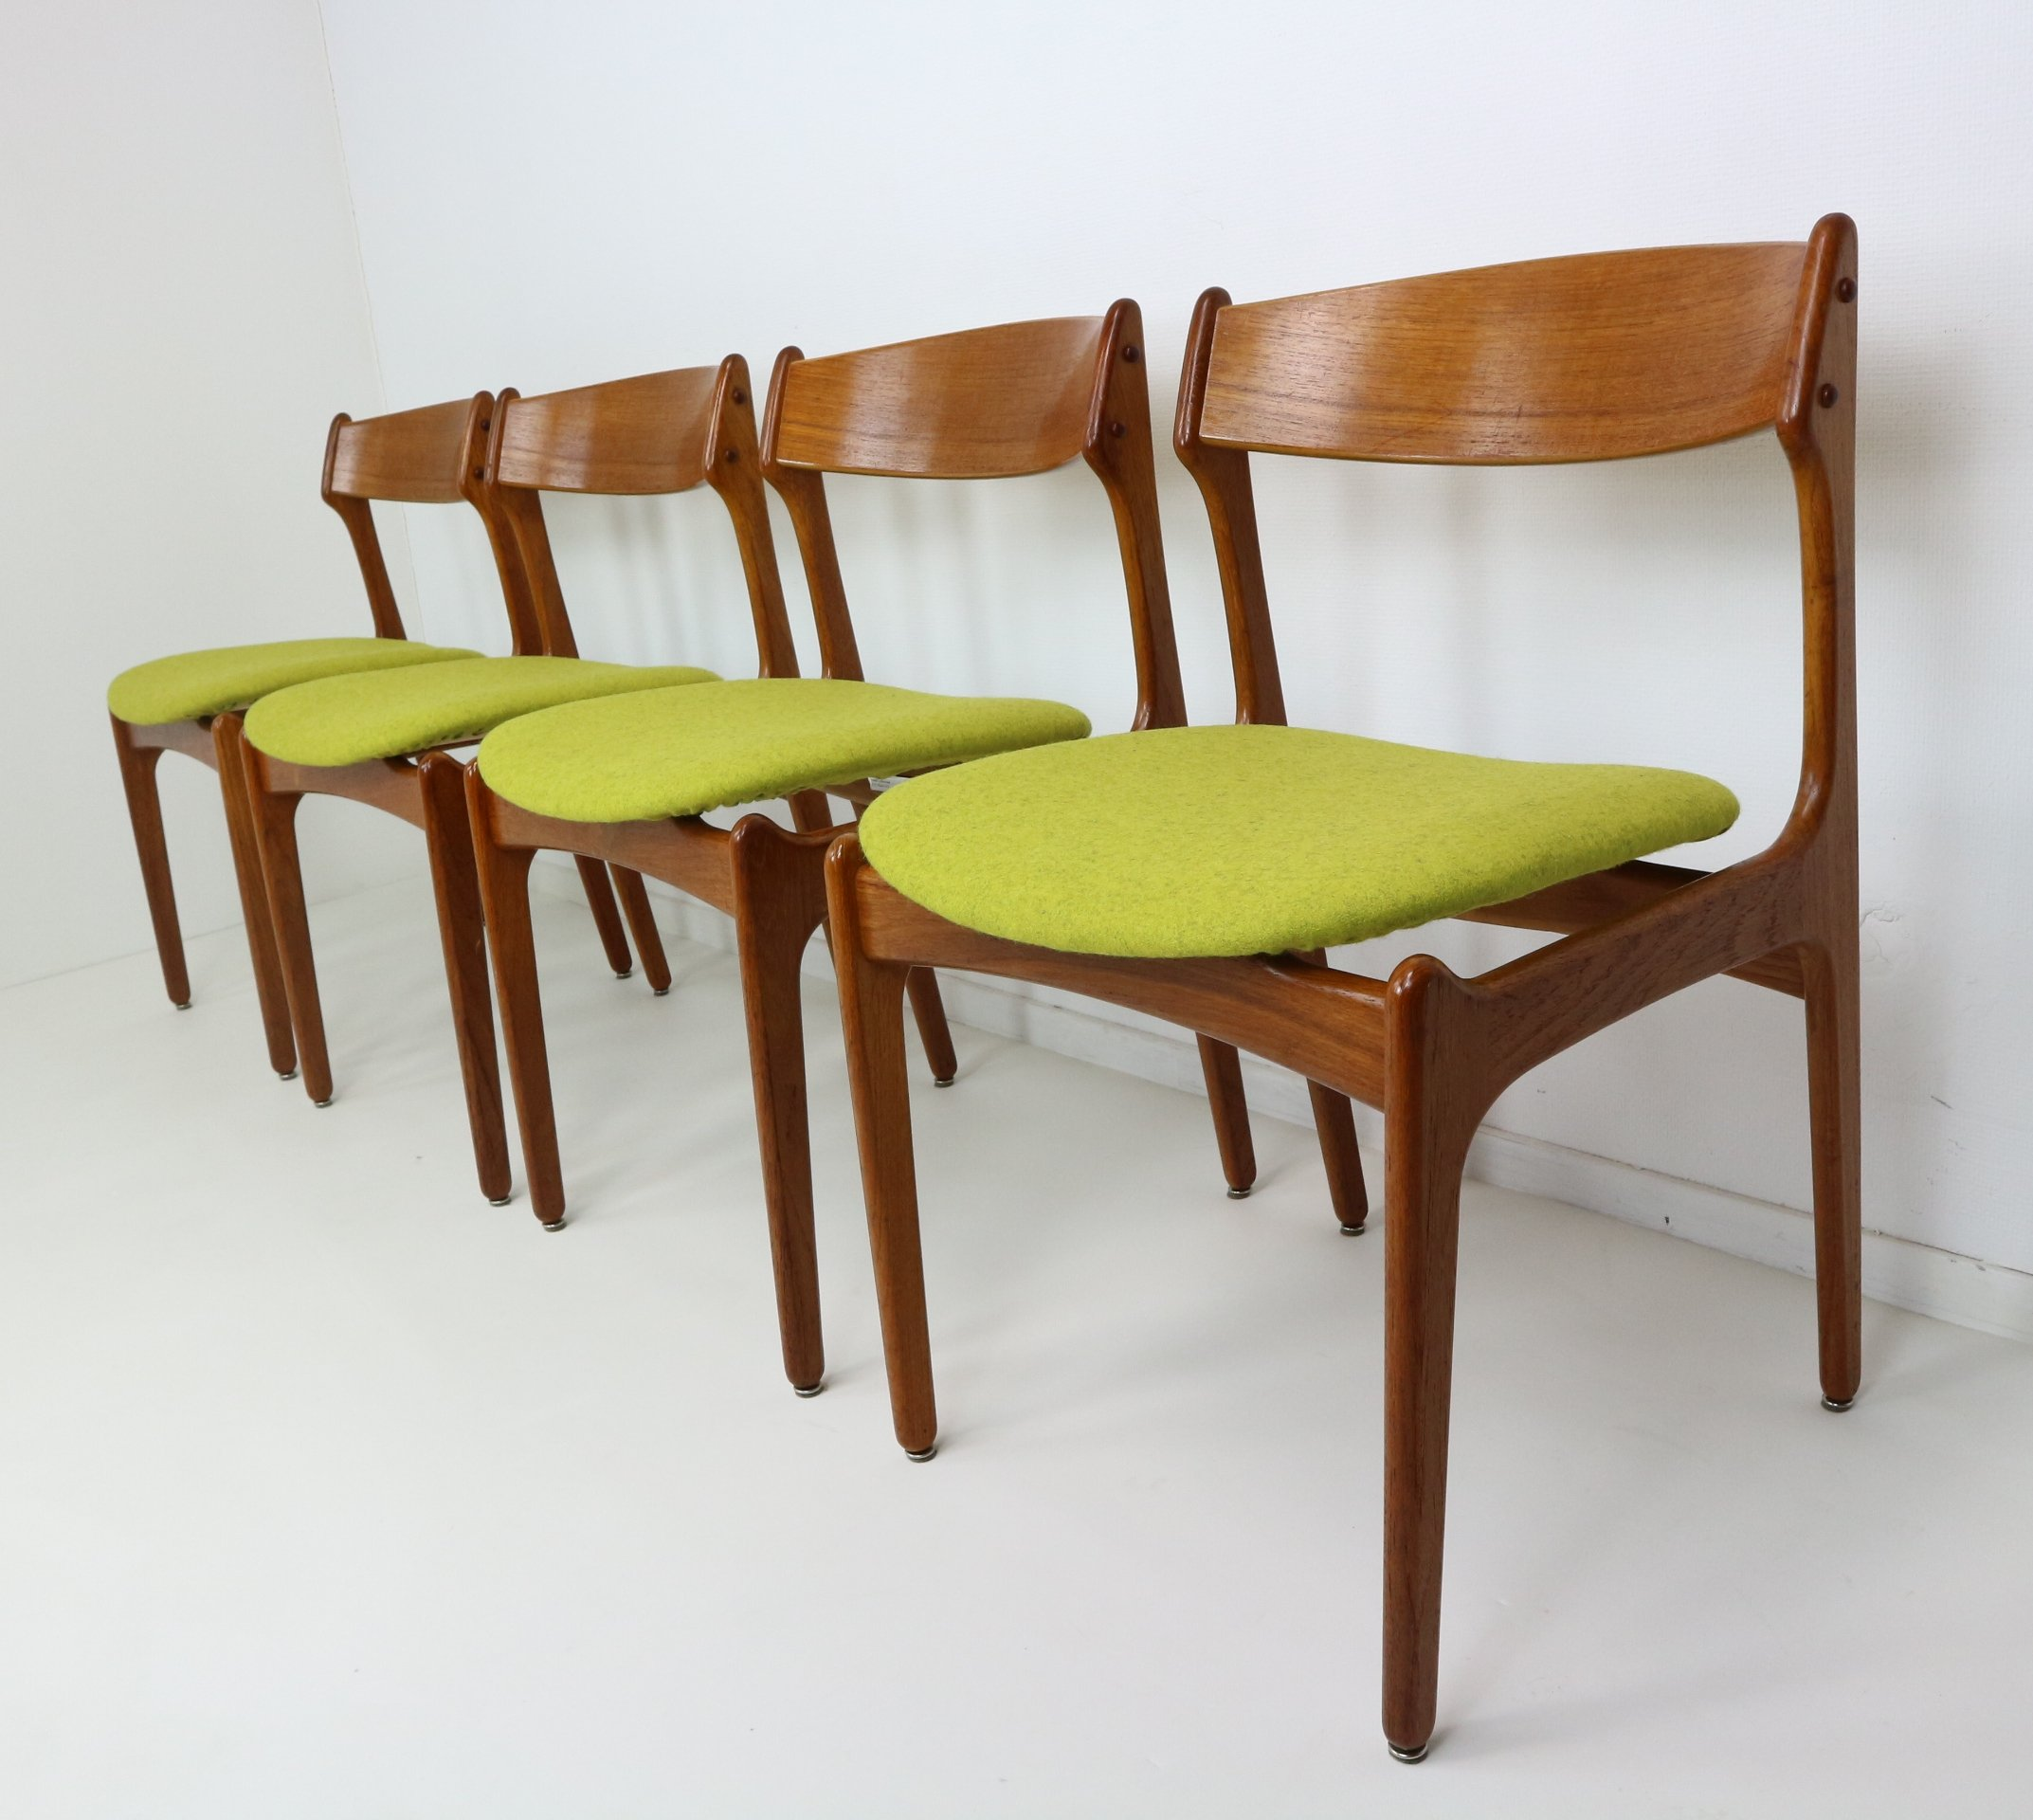 vintage dining chairs by erik buck for o d mobler set of 4 61514